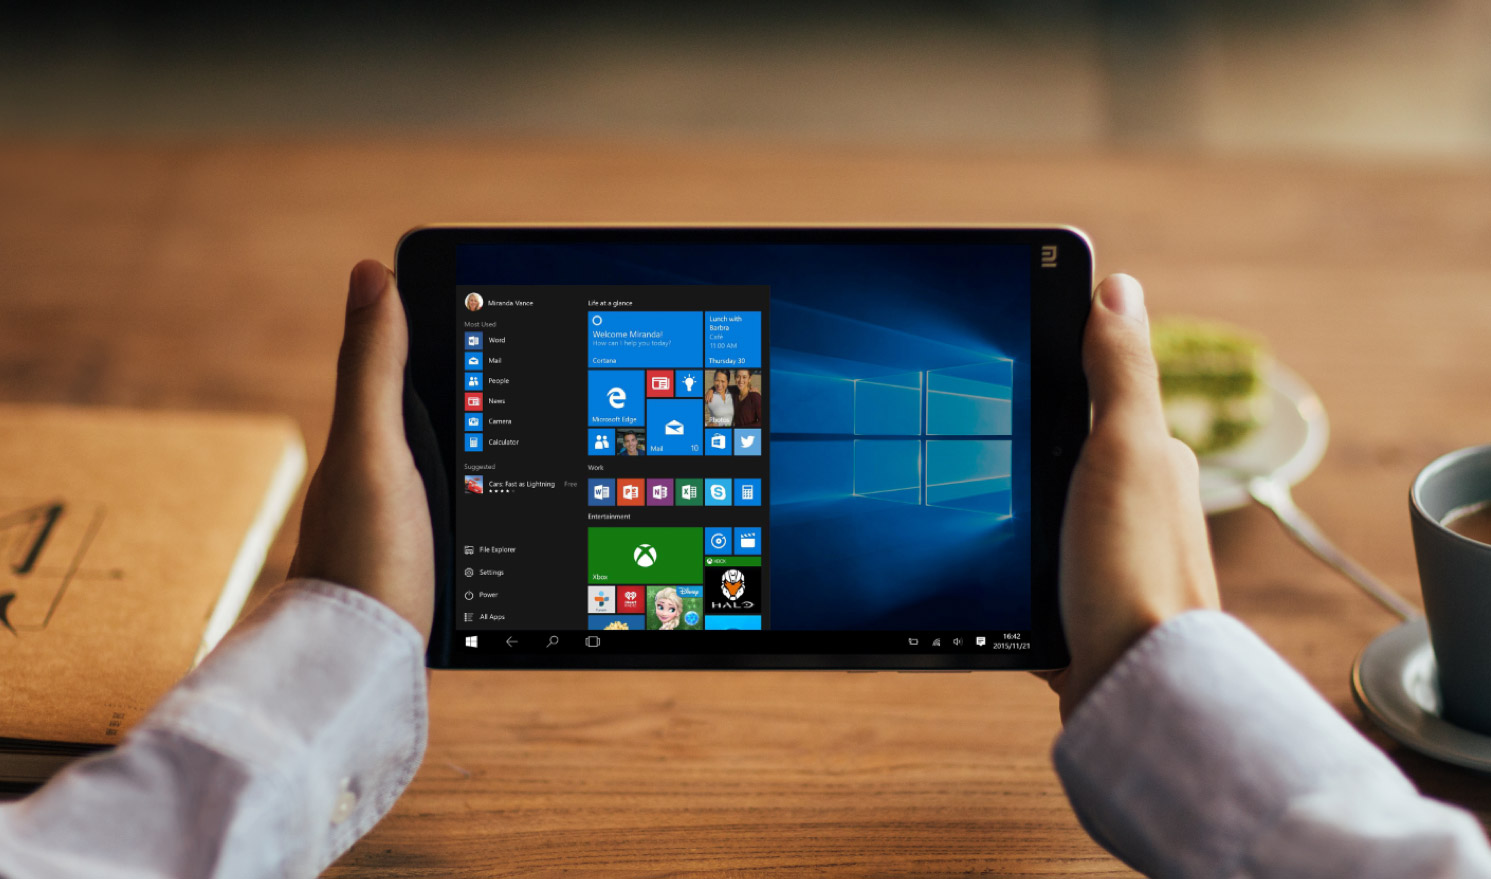 Xiaomi Mi Pad 2 Windows 10 3